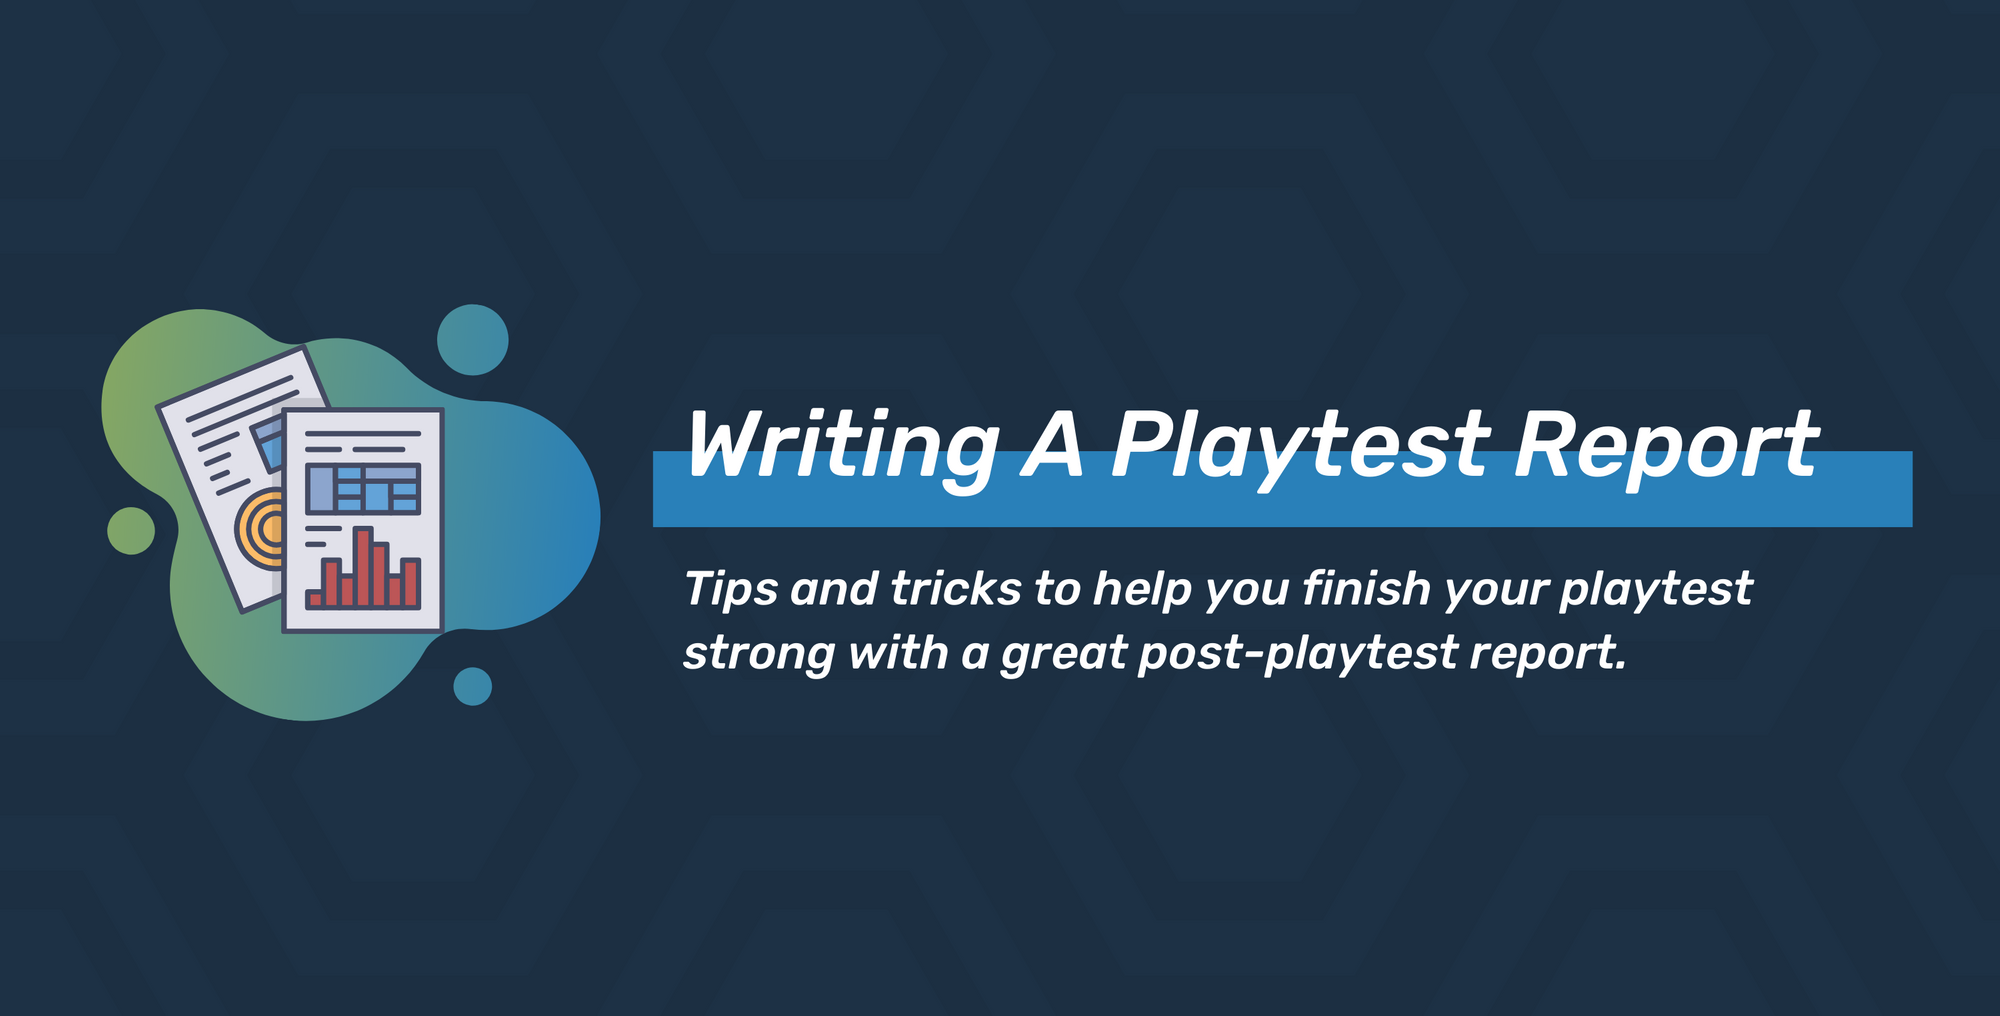 Writing A Playtest Report: Tips and Tricks for Creating a Strong Post-Playtest Report